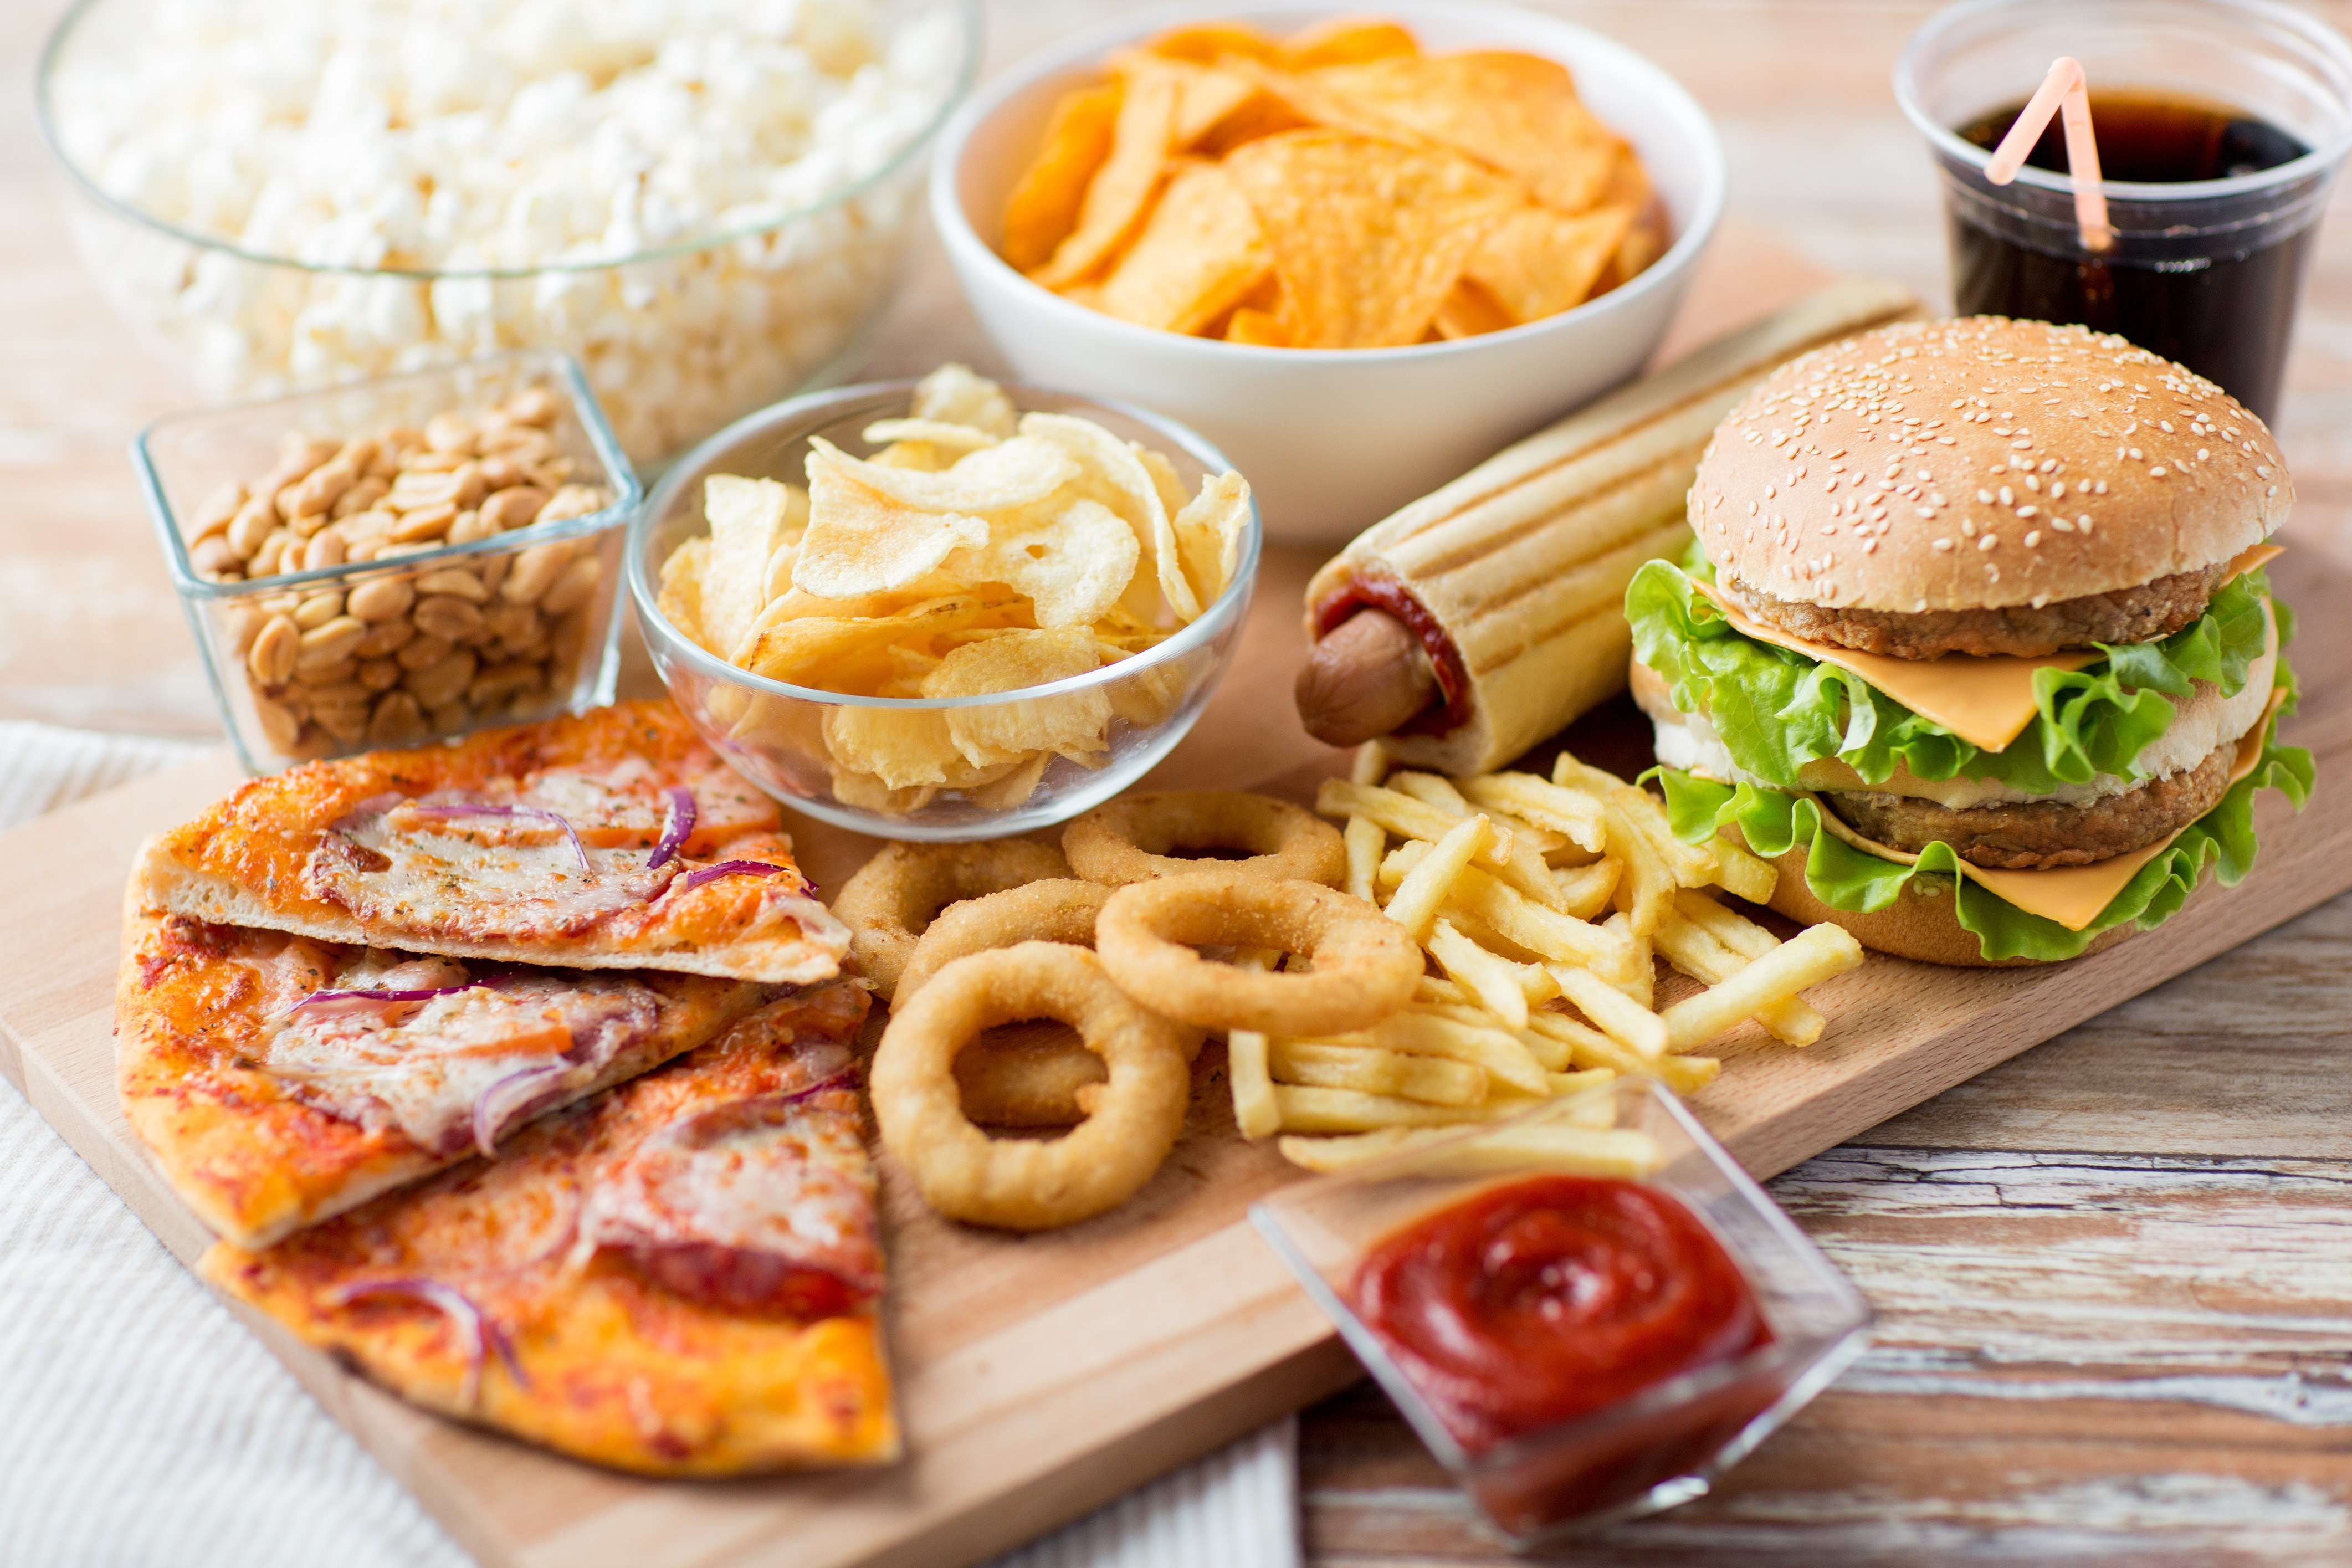 Higher ultra-processed food consumption may lead to type 2 diabetes: JAMA study